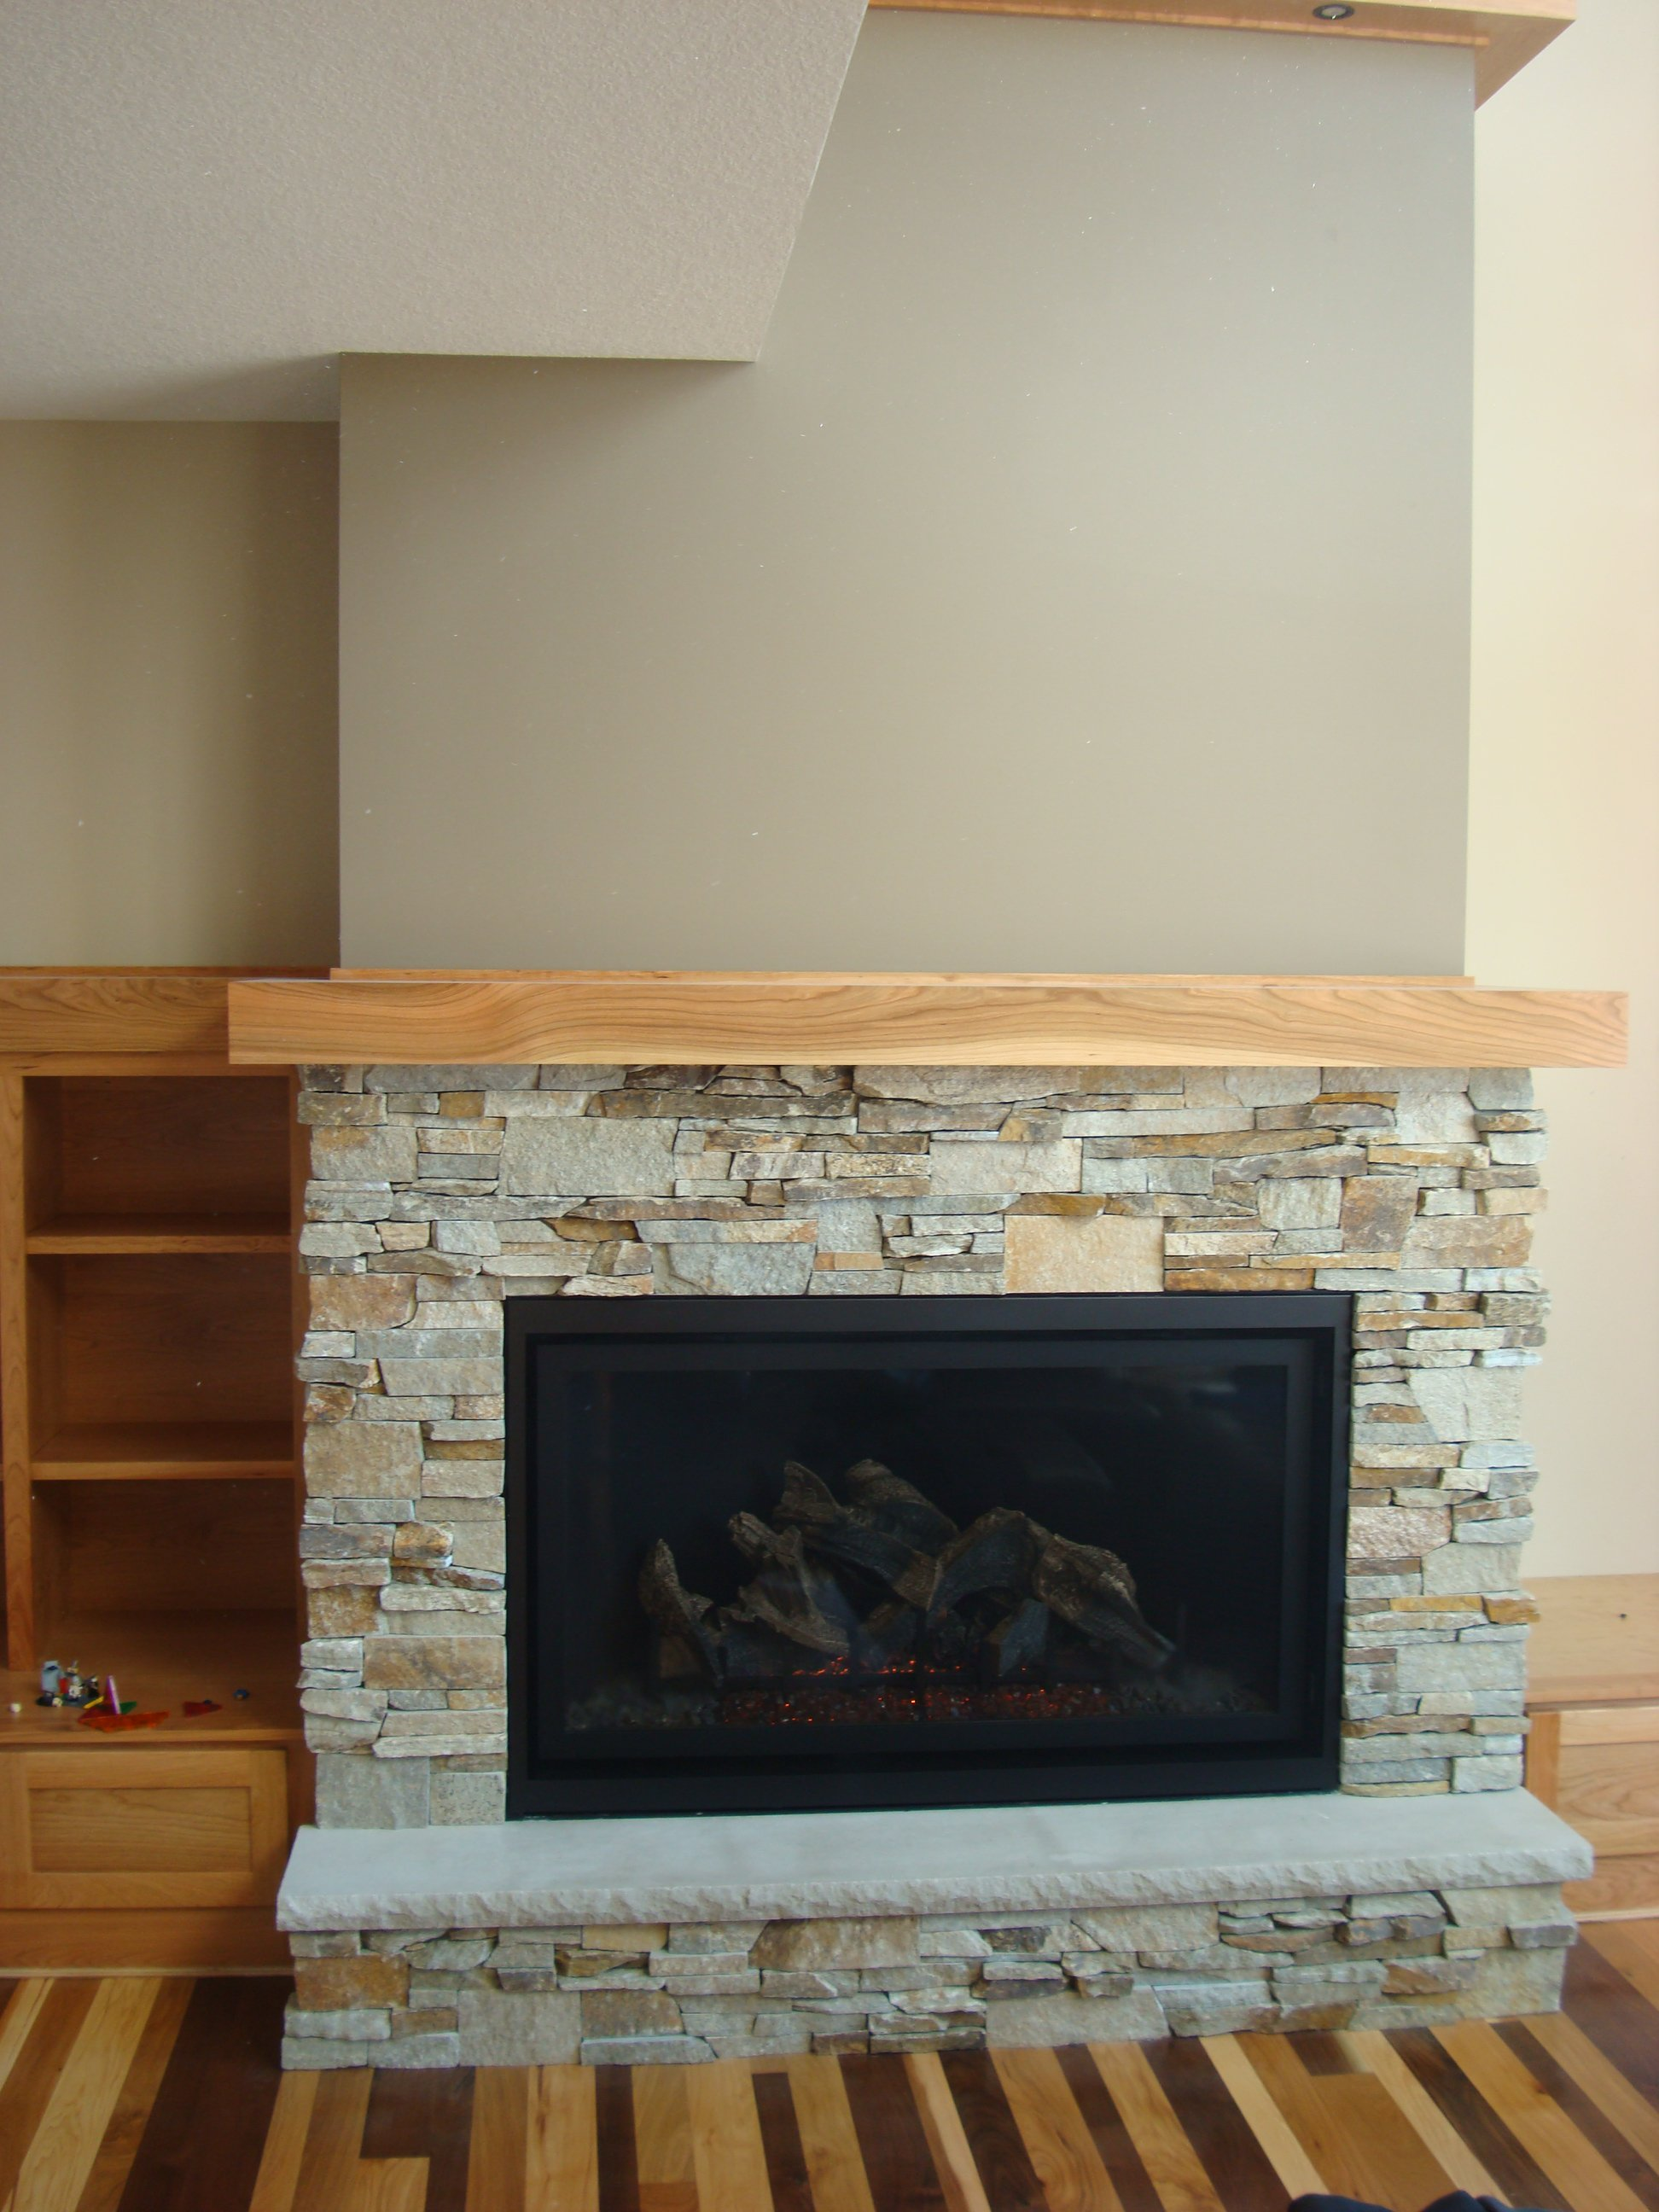 Stellar, gas fireplace, Viewpoint 48, VP48T, traditional fireplace